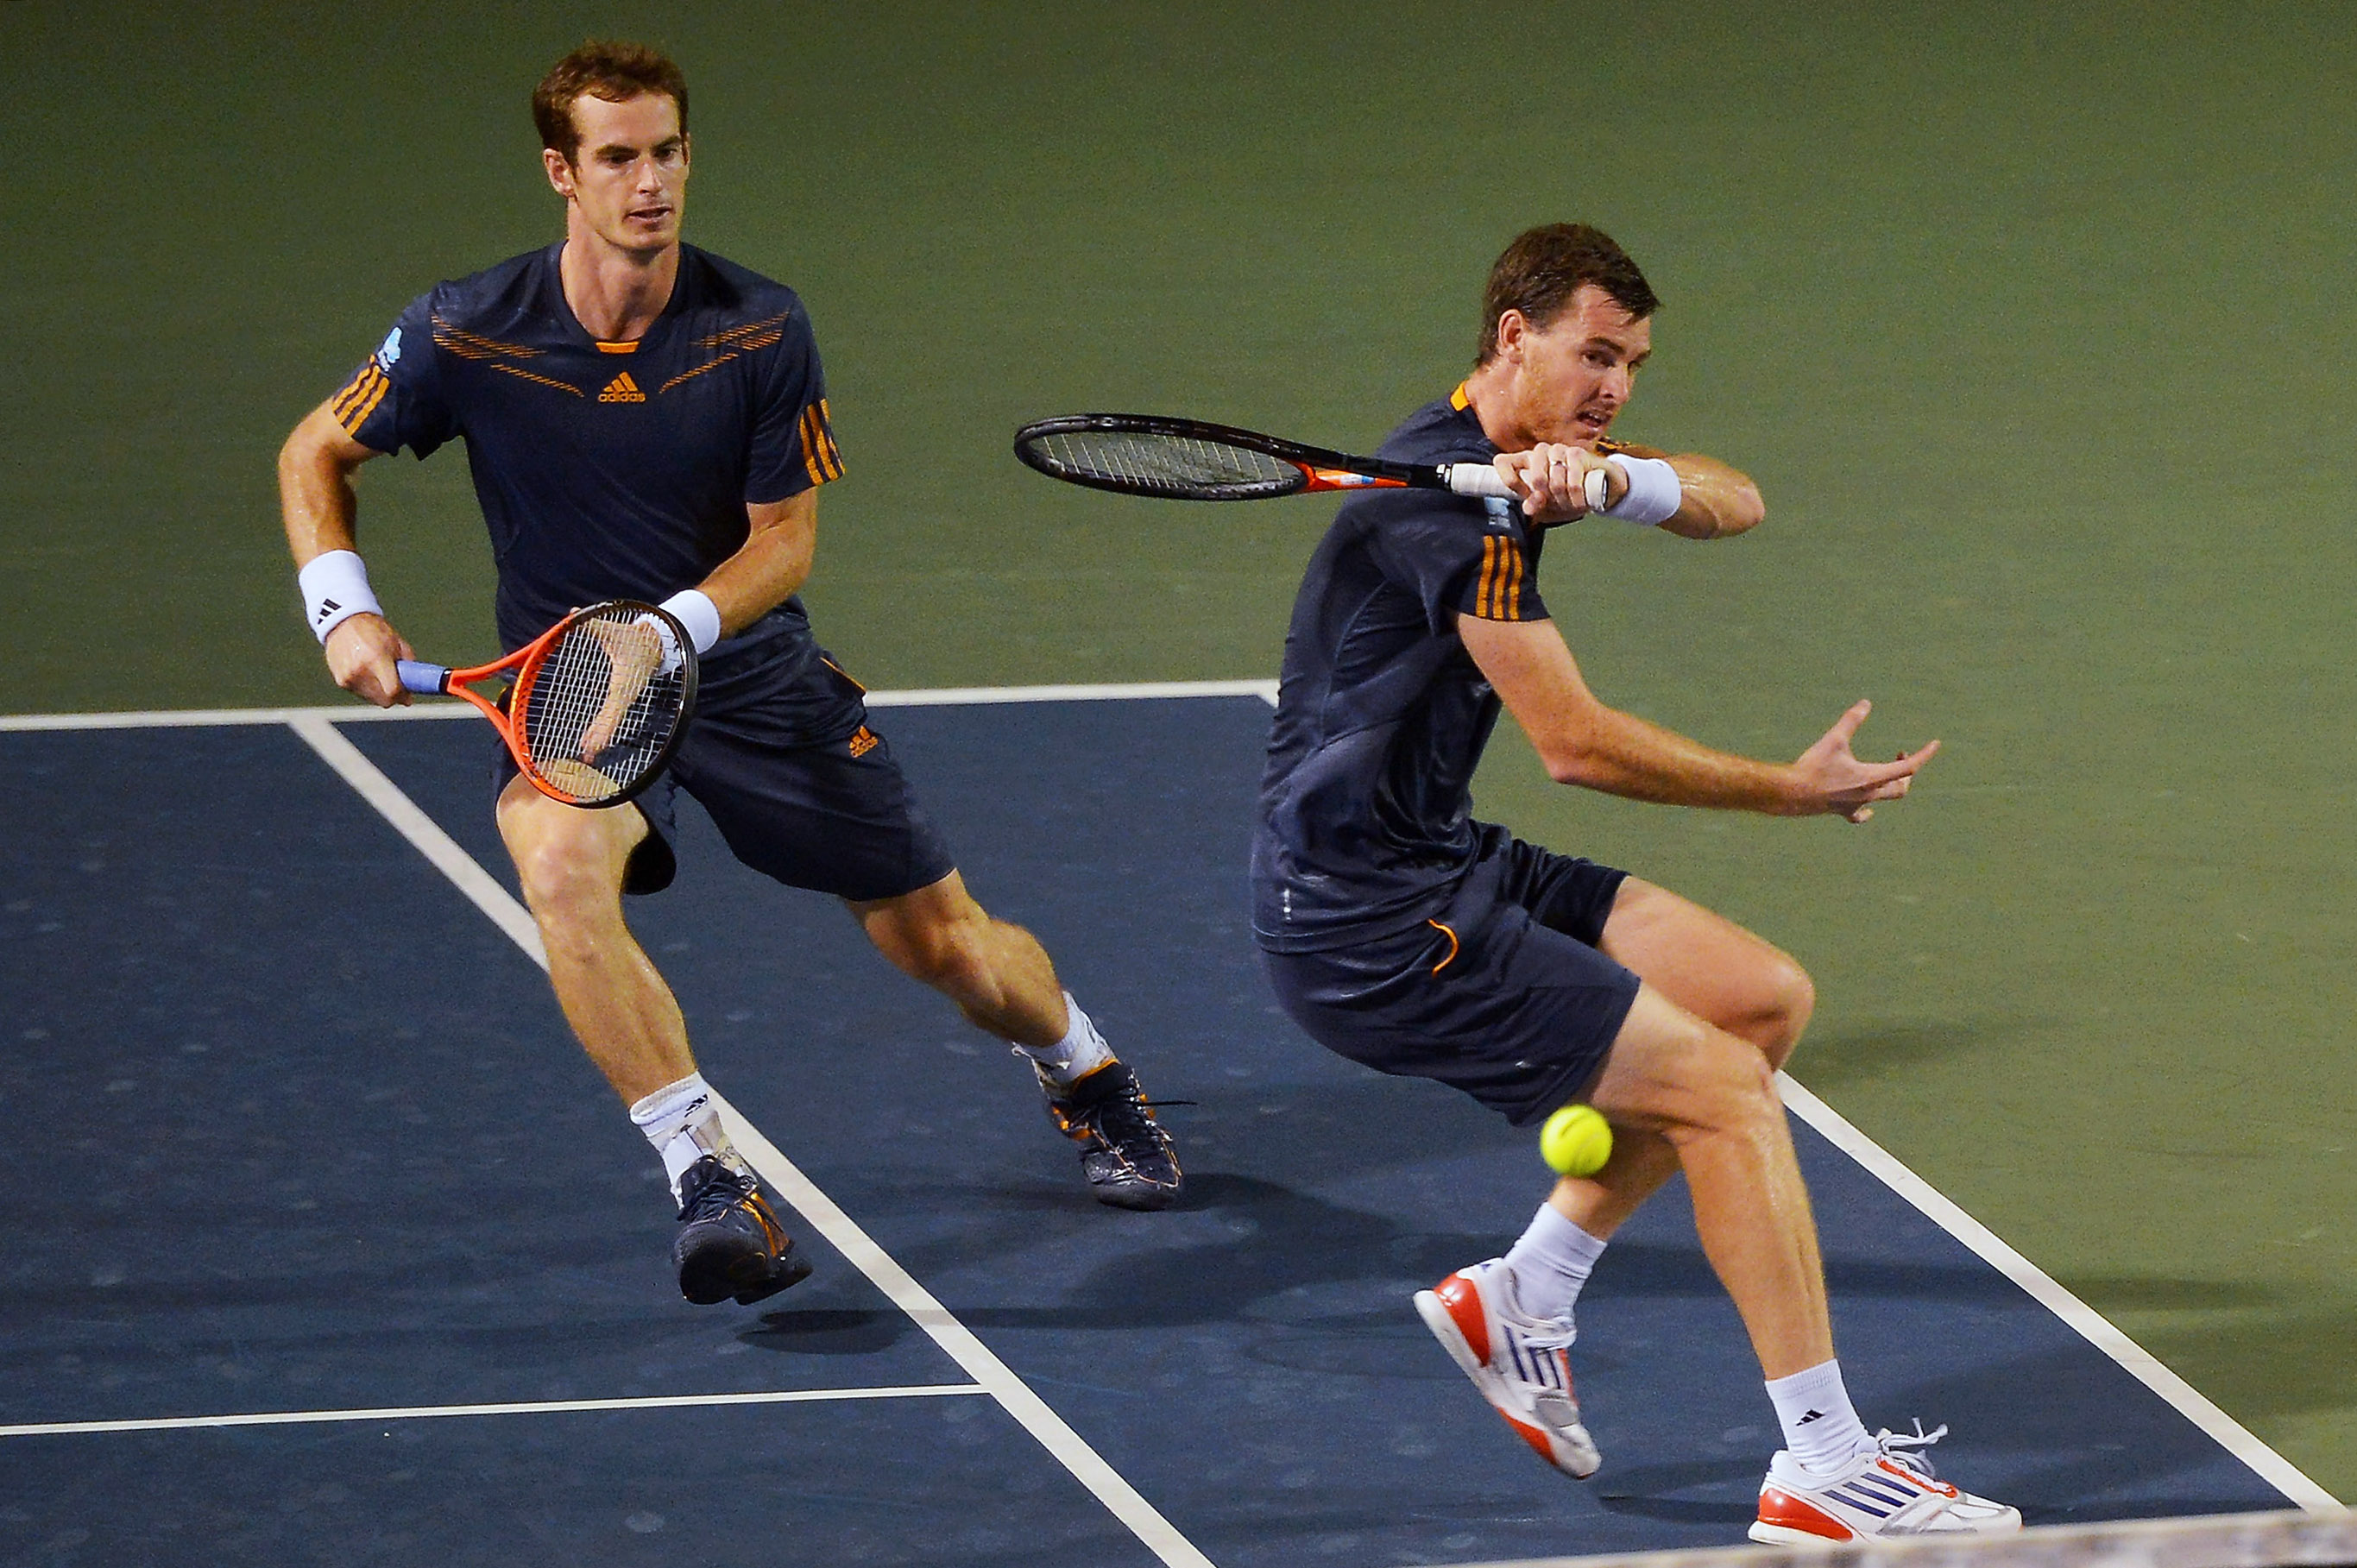 TOKYO, JAPAN - OCTOBER 05: (L-R) Andy Murray and Jamie Murray of Great Britain in action in their quater final match against Radek Stepanek of the Czech Republic and Leander Paes of India during day five of the Rakuten Open at Ariake Colosseum on October 5, 2012 in Tokyo, Japan. (Photo by Koki Nagahama/Getty Images)